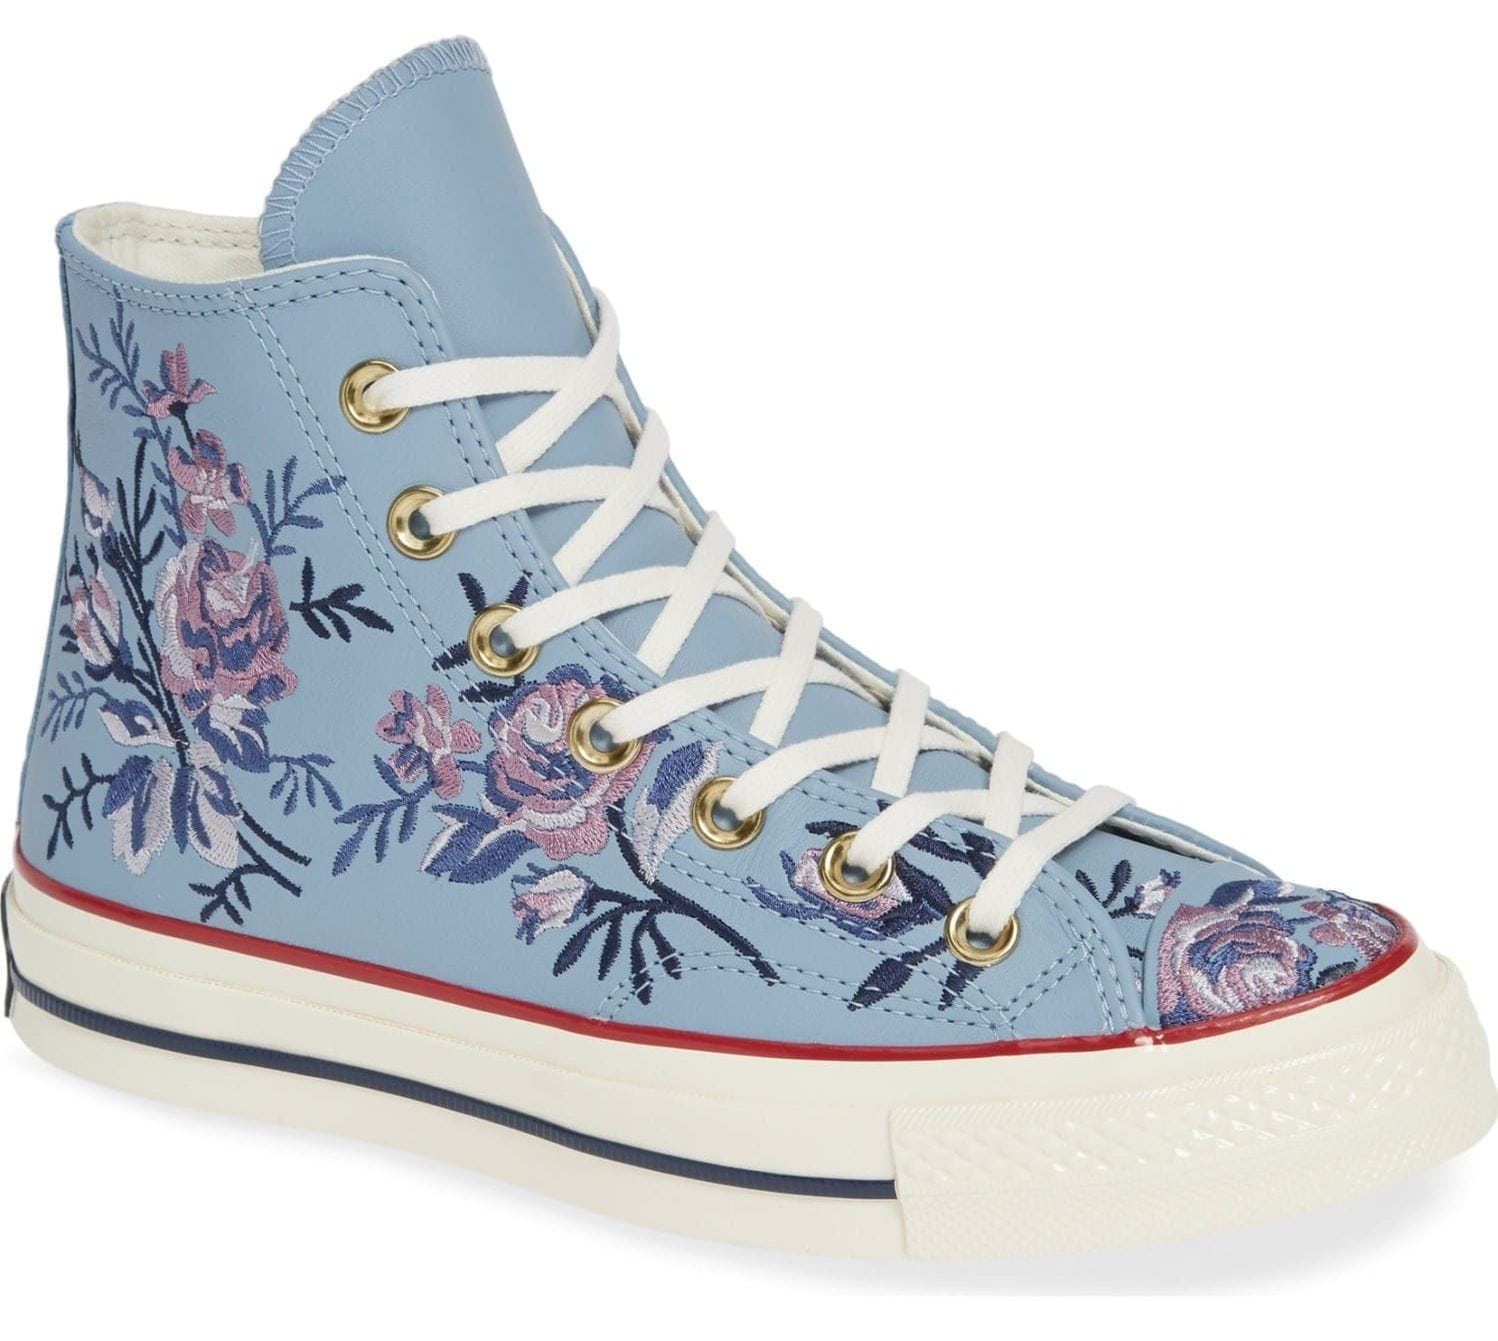 c3f87b377740 Converse Unveils New Floral Sneakers - Simplemost